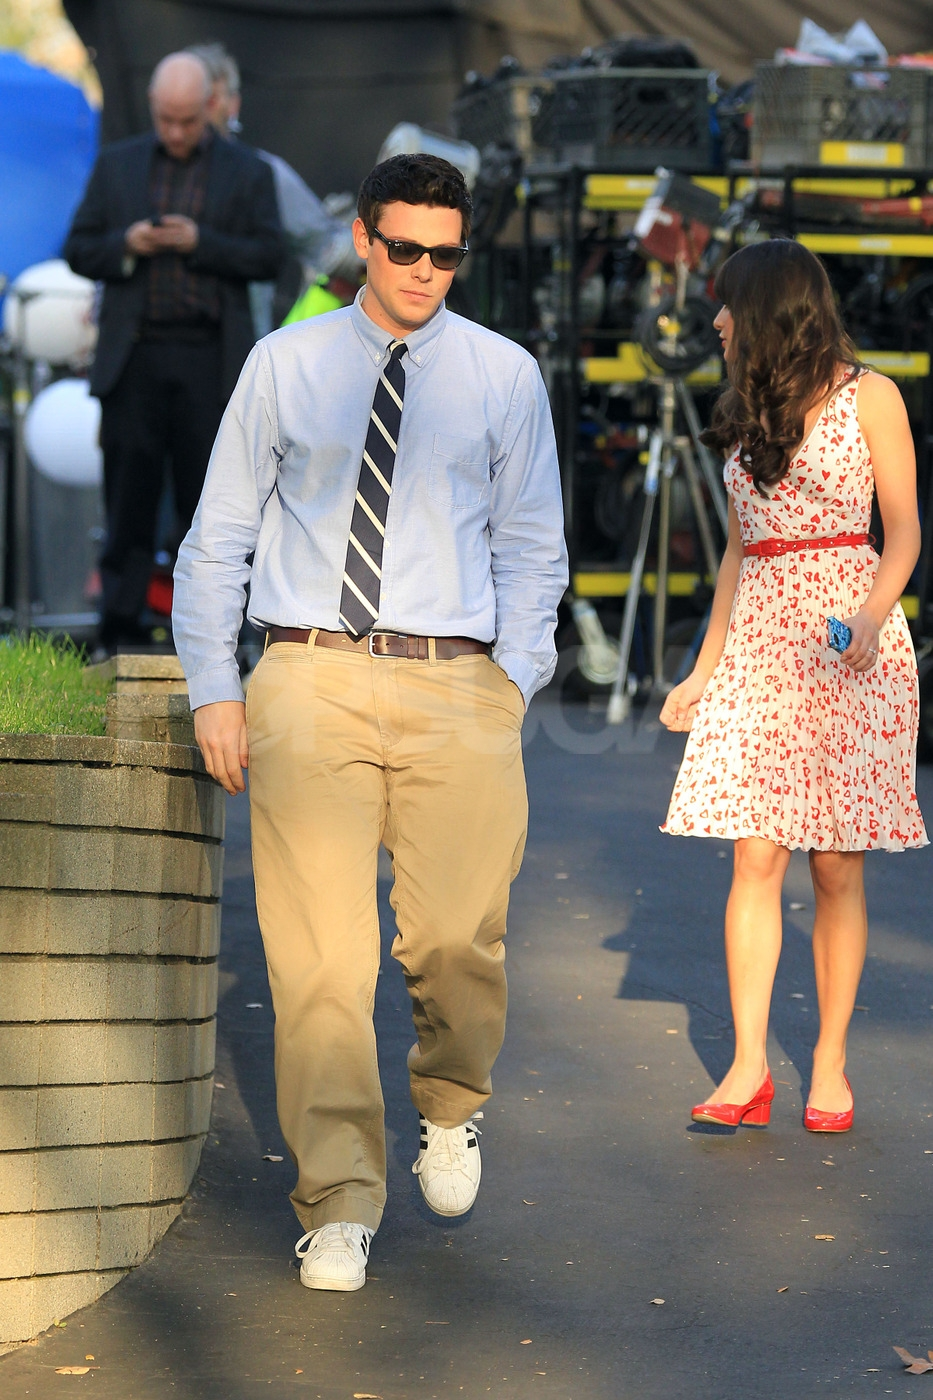 Cory Monteith and Lea Michele walked to the set of Glee together.